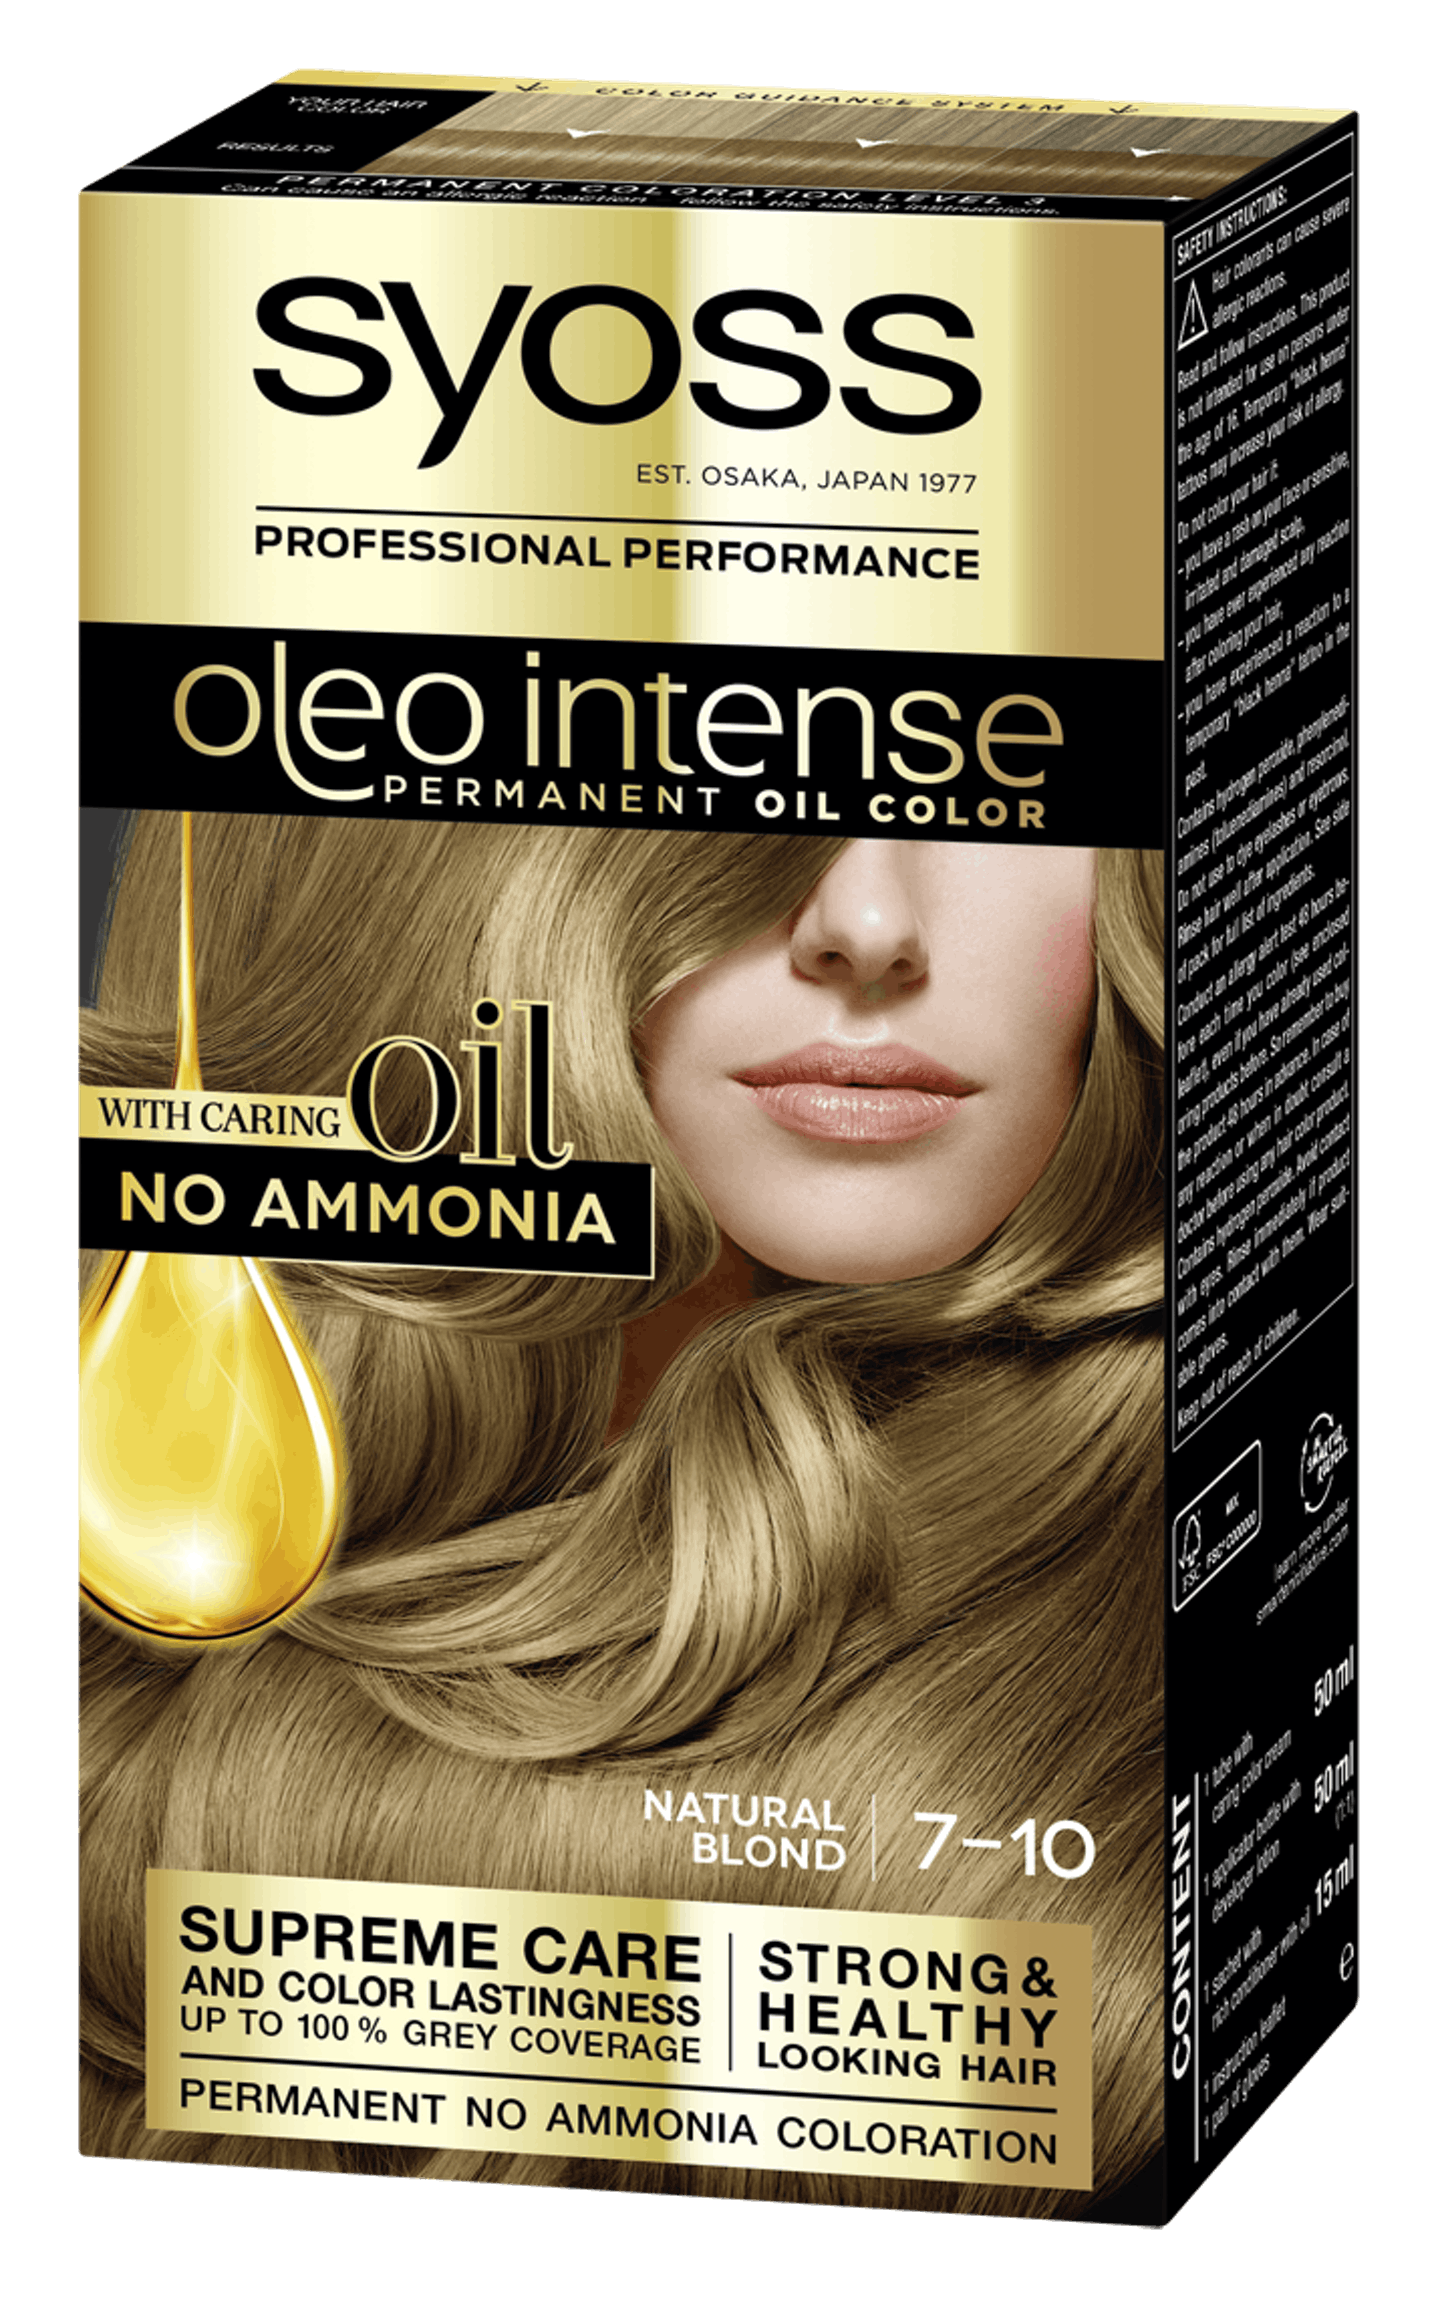 Syoss Oleo Intense Permanent Oil Color 7-10 Natural Blond